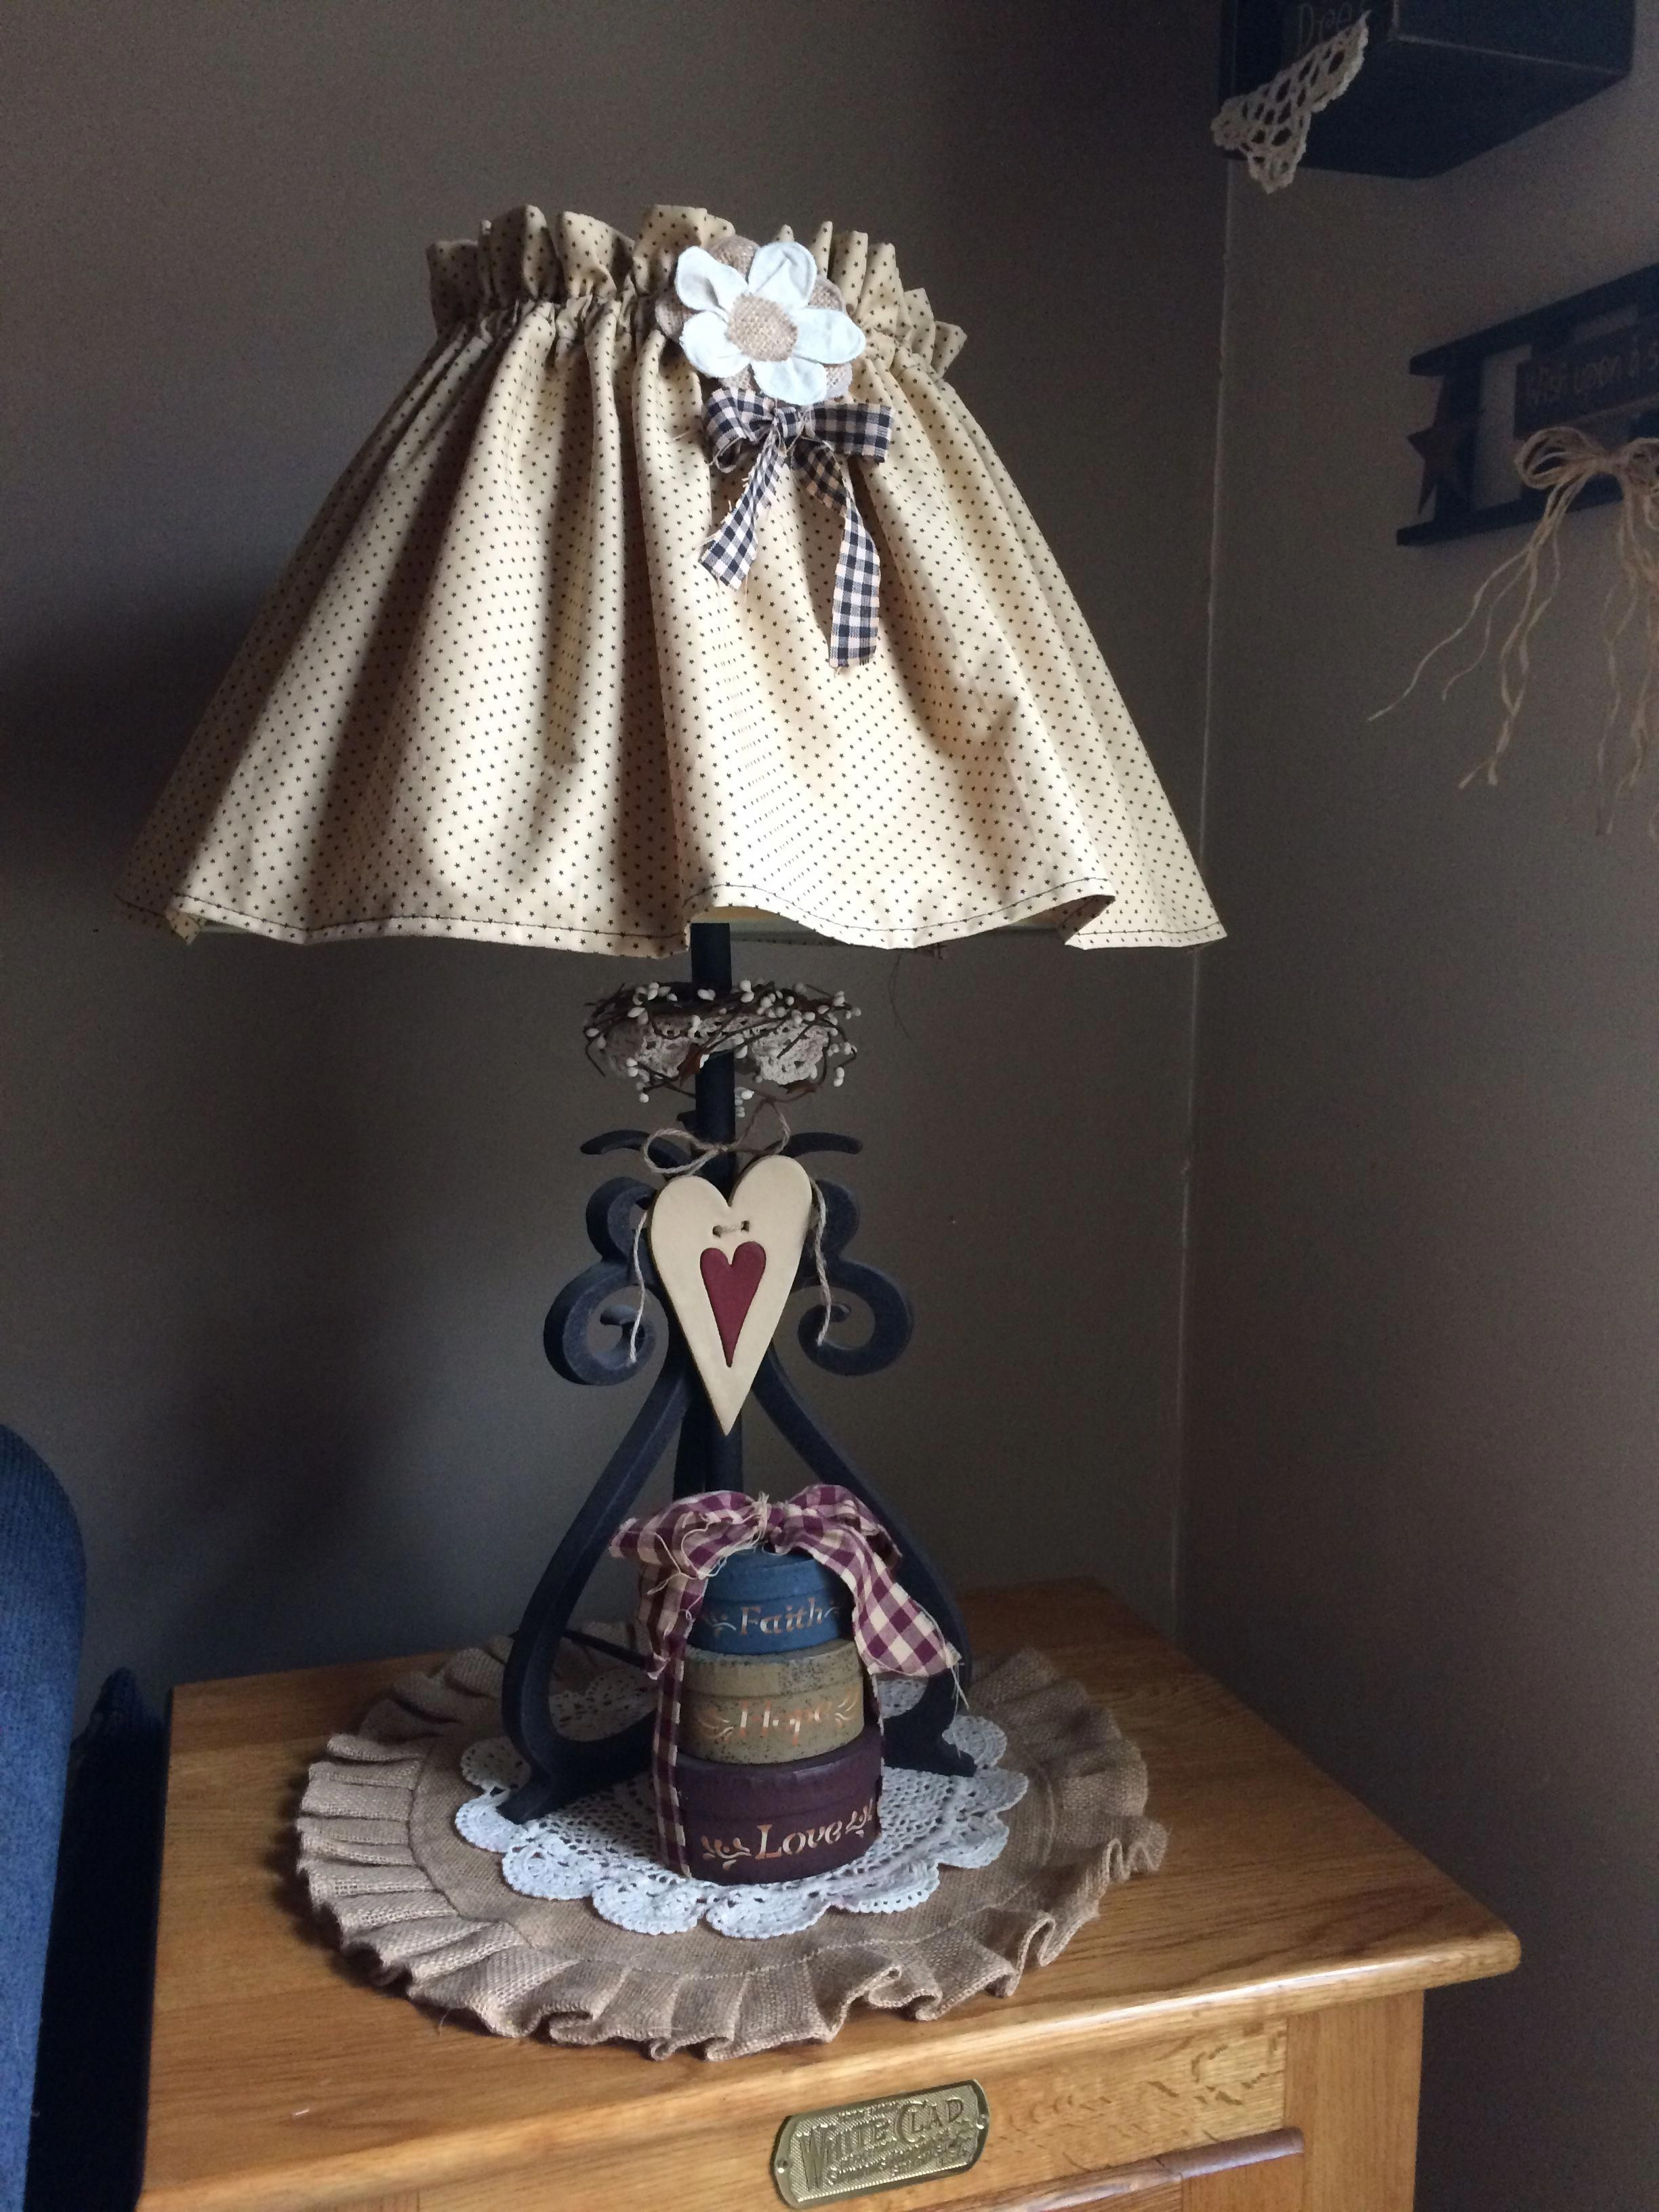 Pin by Cathy Stank on Country decorations in 2020